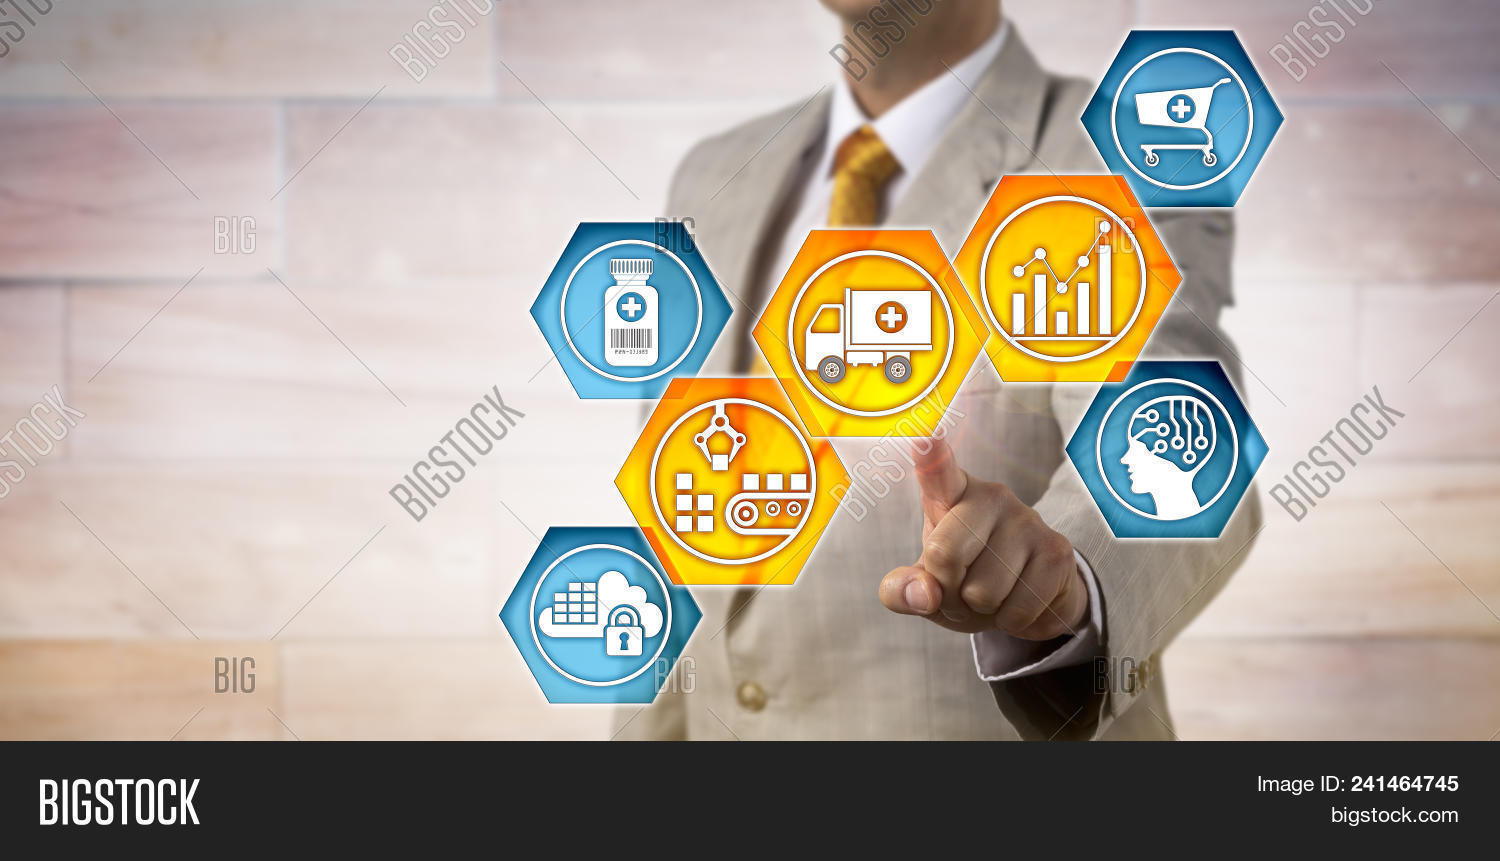 AI,SCM,administrator,analytics,analyze,artificial,business,businessman,chain,cloud,concept,container,control,corporate,data,distribution,effective,efficient,executive,flow,freight,handling,icon,information,intelligence,interface,internet,logistician,logistics,man,management,manager,materials,medicine,monitoring,organization,packaging,pharma,pharmaceutical,planning,predictive,processing,security,software,storage,supply,technology,transportation,warehouse,warehousing